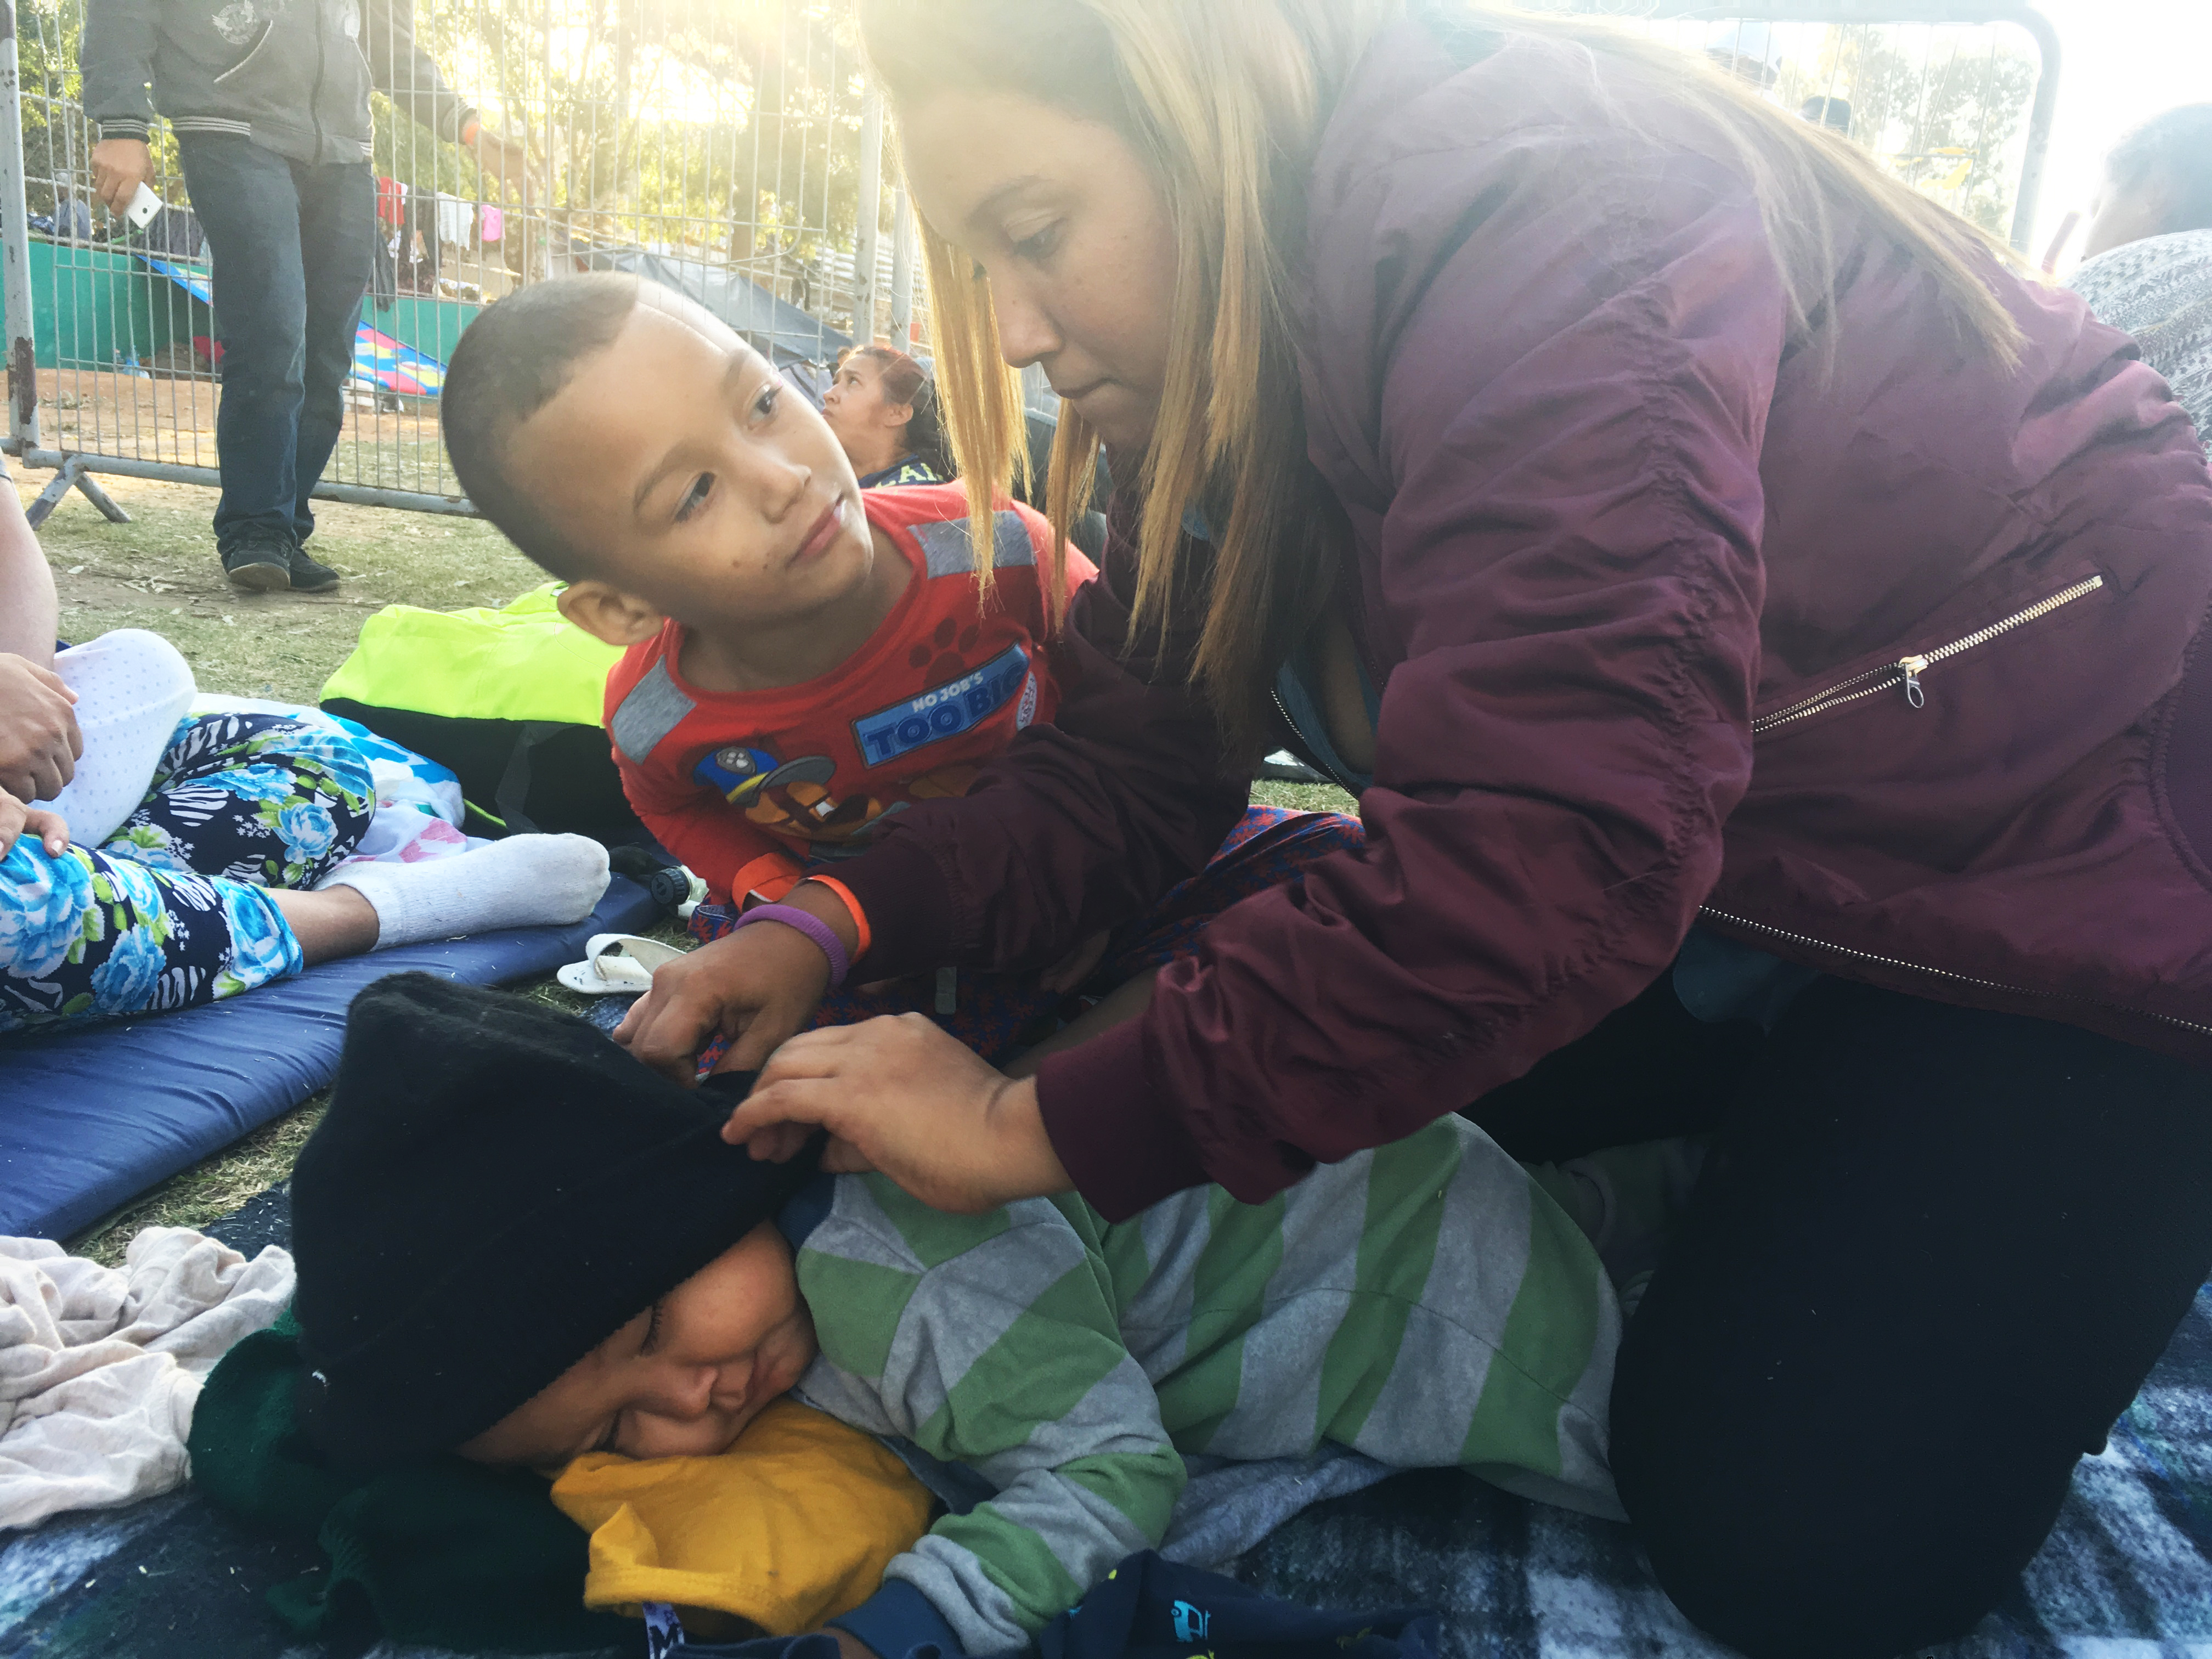 A woman covering her sleeping toddler with a coat